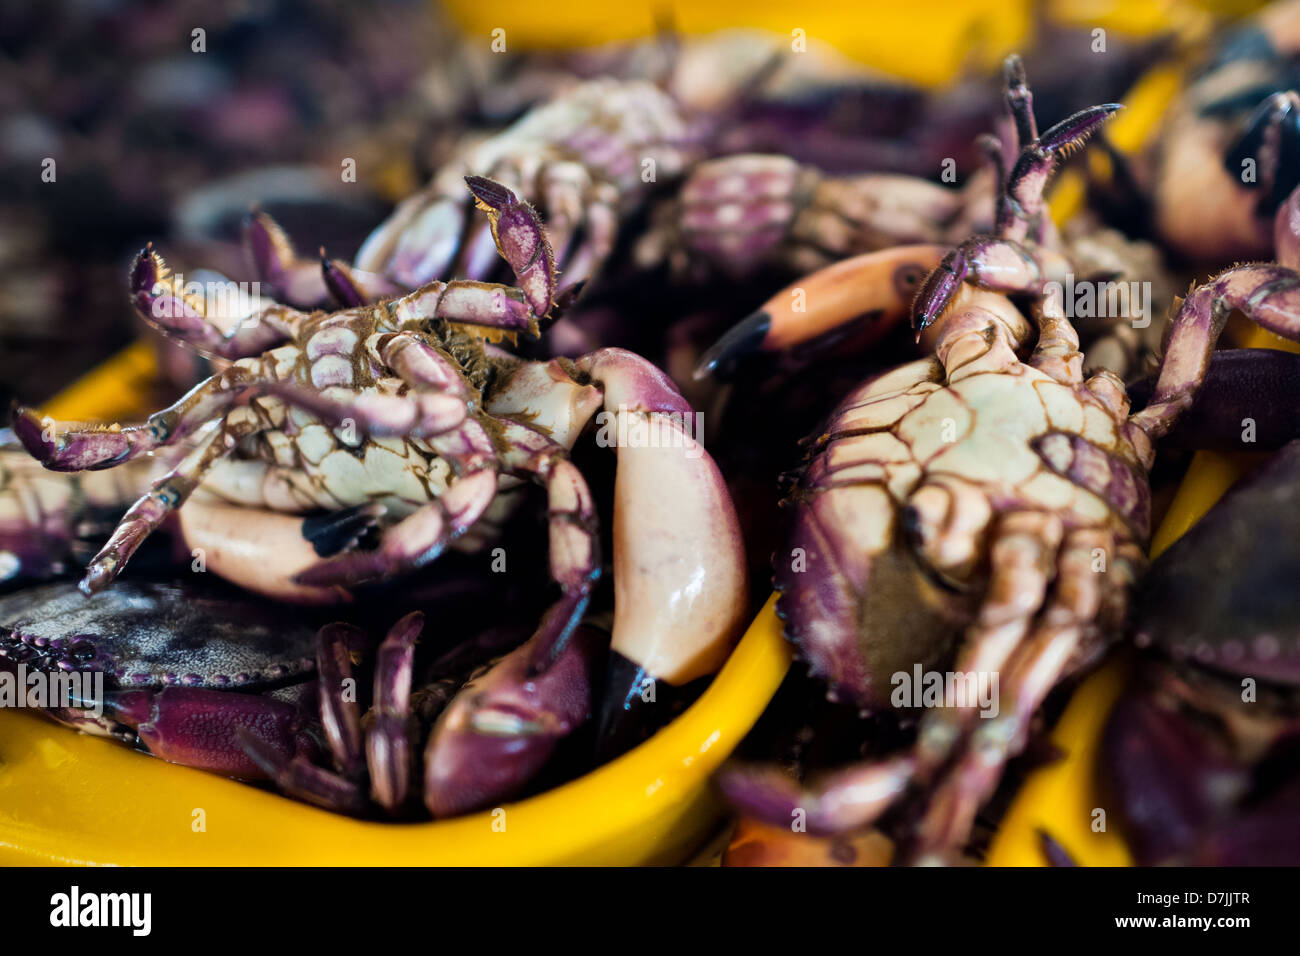 Crabs for sale seen at Chorrillos seafood and fish market in Lima, Peru. Stock Photo